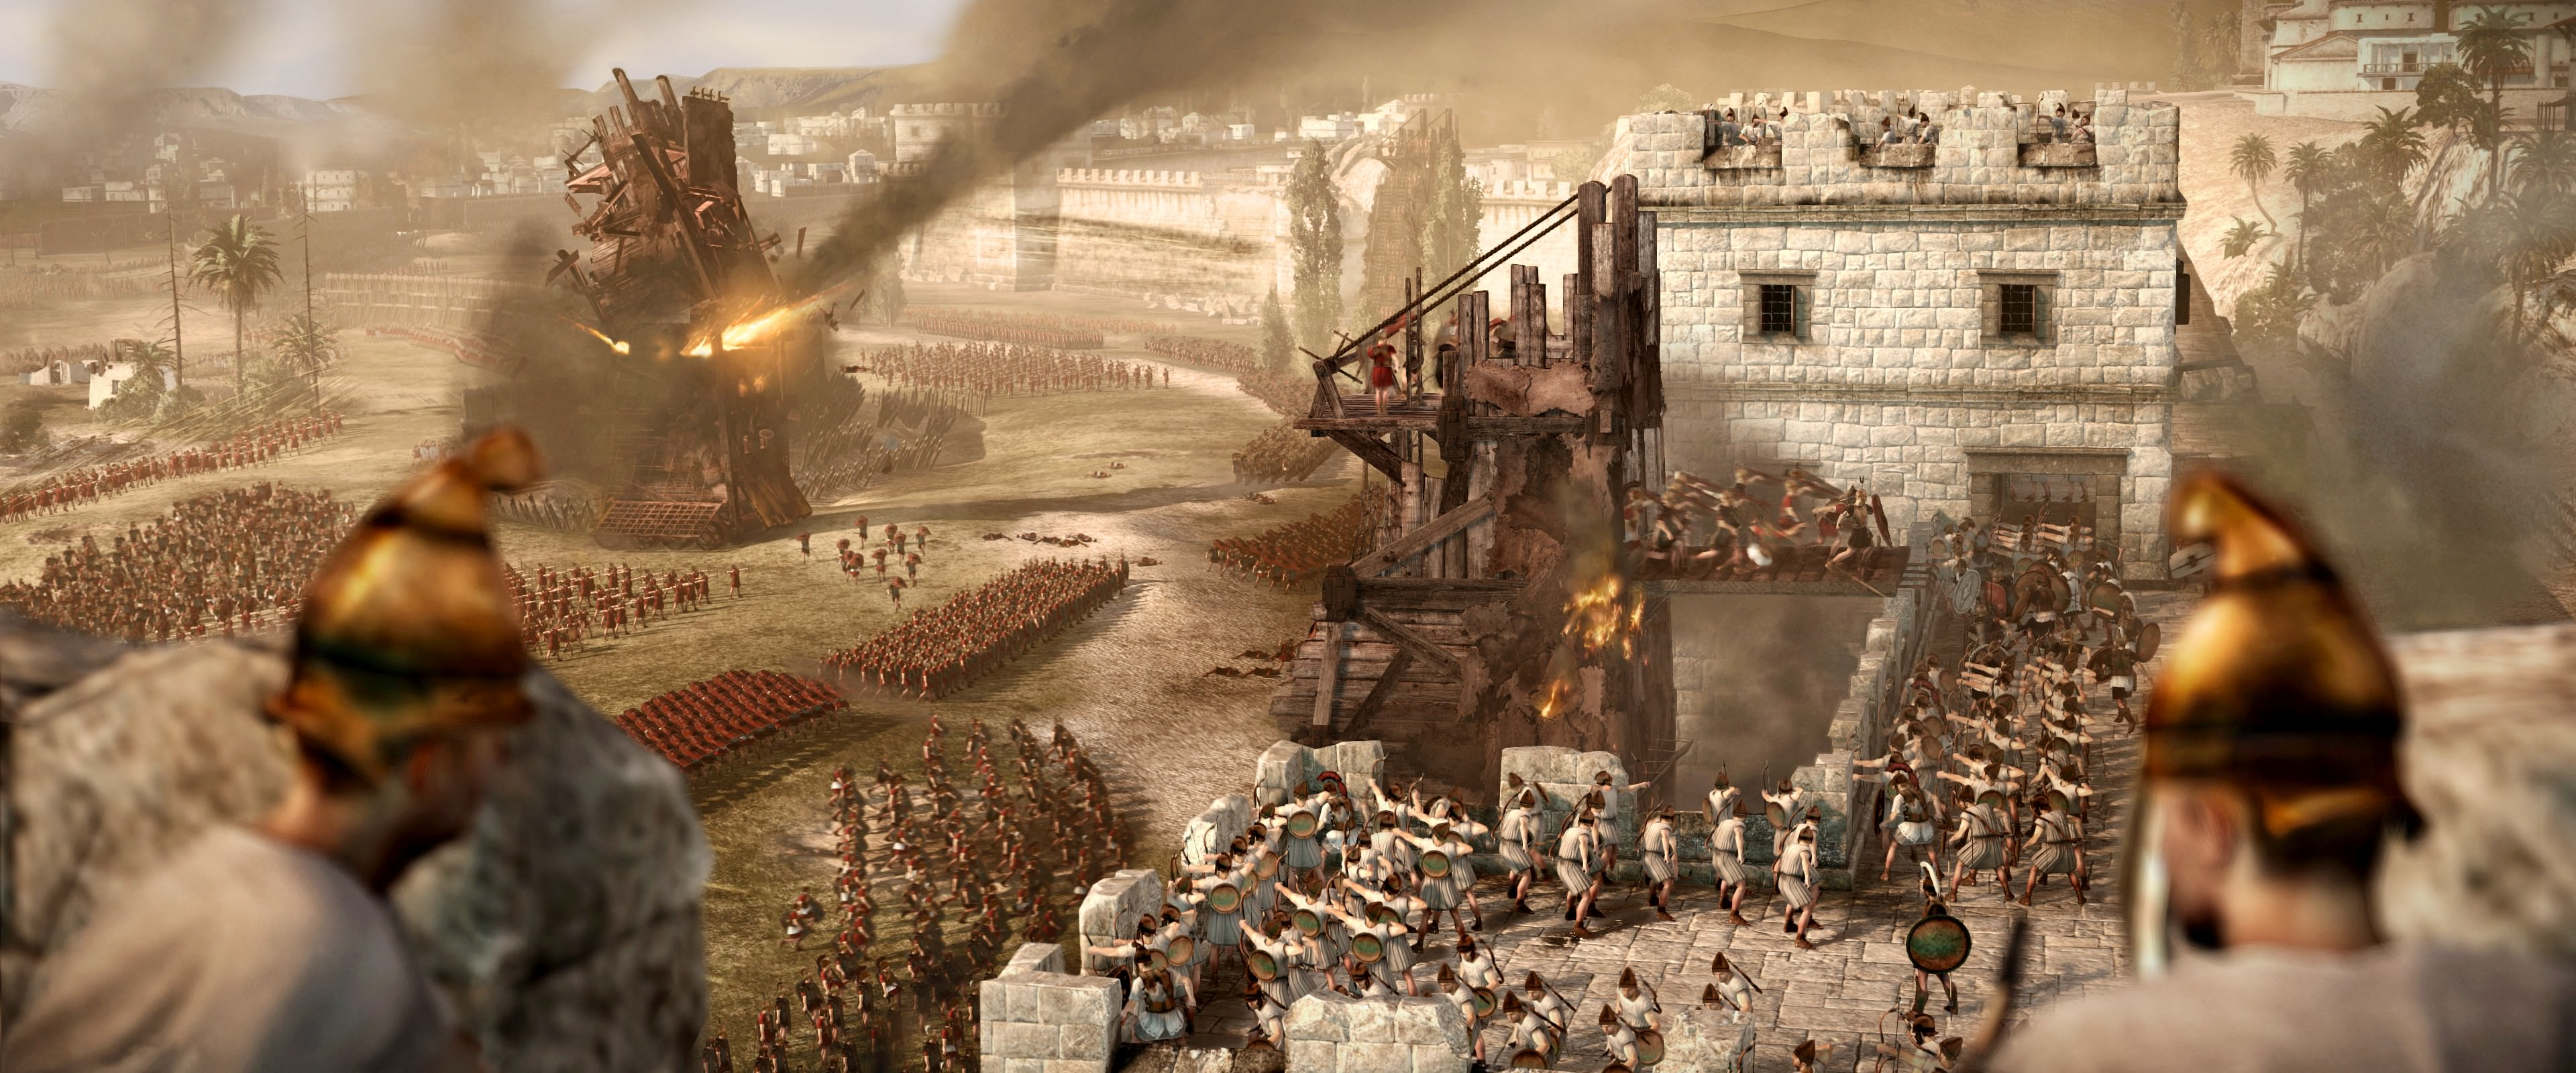 Steam Workshop :: Rome 2 (mod collection) on rome total realism, rome total war scipii strategy, rome 2 emperor edition, rome greek wars, rome total war alexander factions, rome total war game, rome total war faction strategy, rome total war heaven, rome total war custom maps, rome 2 interactive map, rome total war unit guide, rome total war 3, rome 2 on sale, rome 2 strategy guide, rome total war building guide, rome 2 battle map, rome total war map editor, rome total war city map,